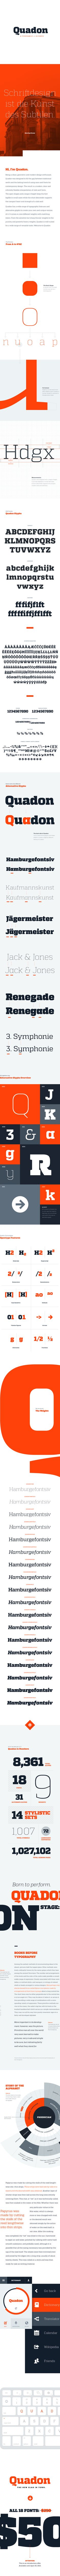 Quadon Typefamily by Rene Bieder, via Behance